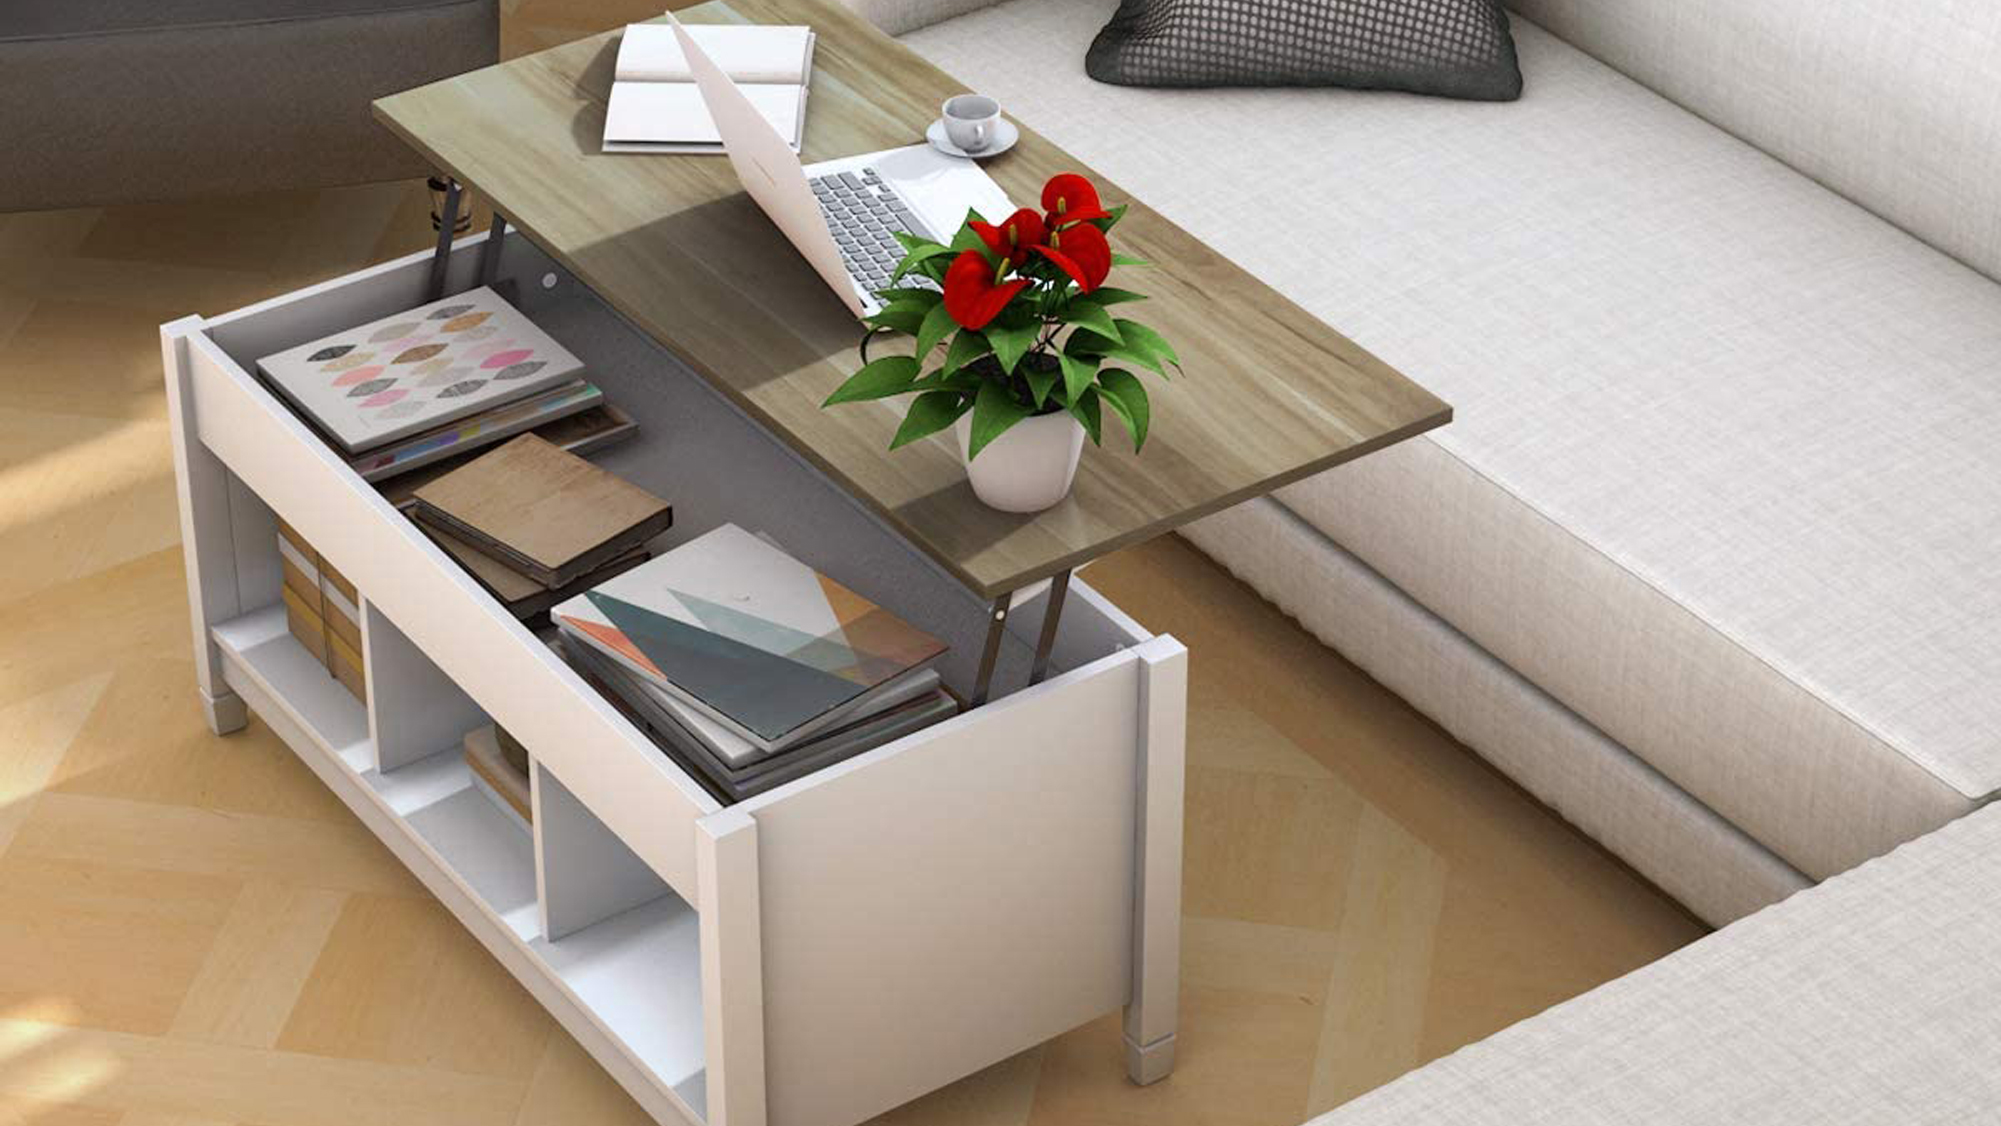 Tangkula Wood Lift Top Coffee Table, Modern Coffee Table w/Hidden Compartment